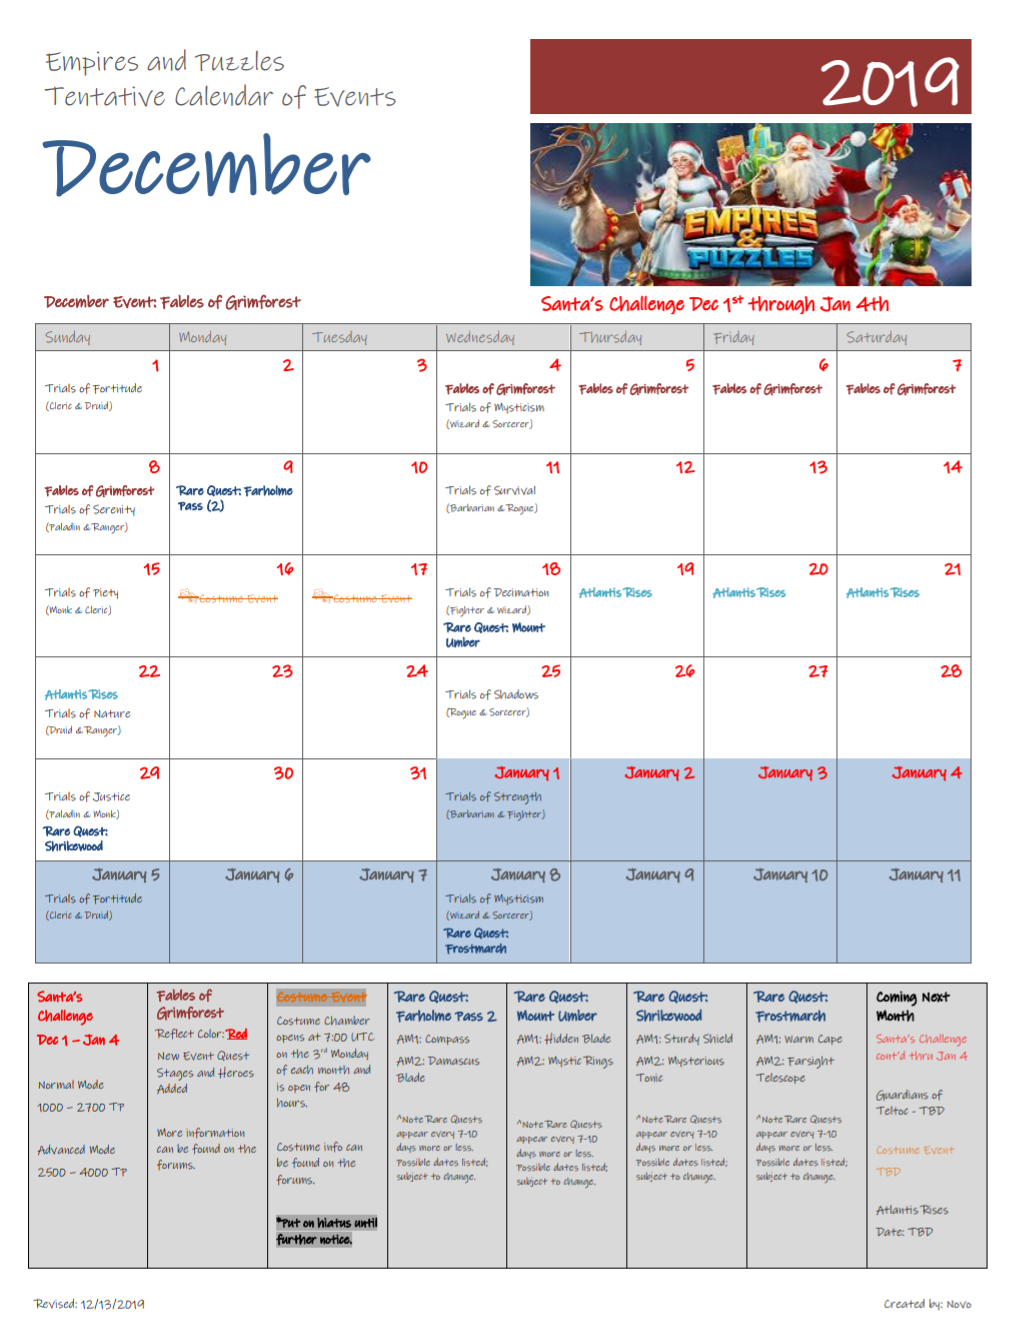 12132019 Revised Calendar In Lieu Of Recent Announcements intended for Empires And Puzzles Calendar